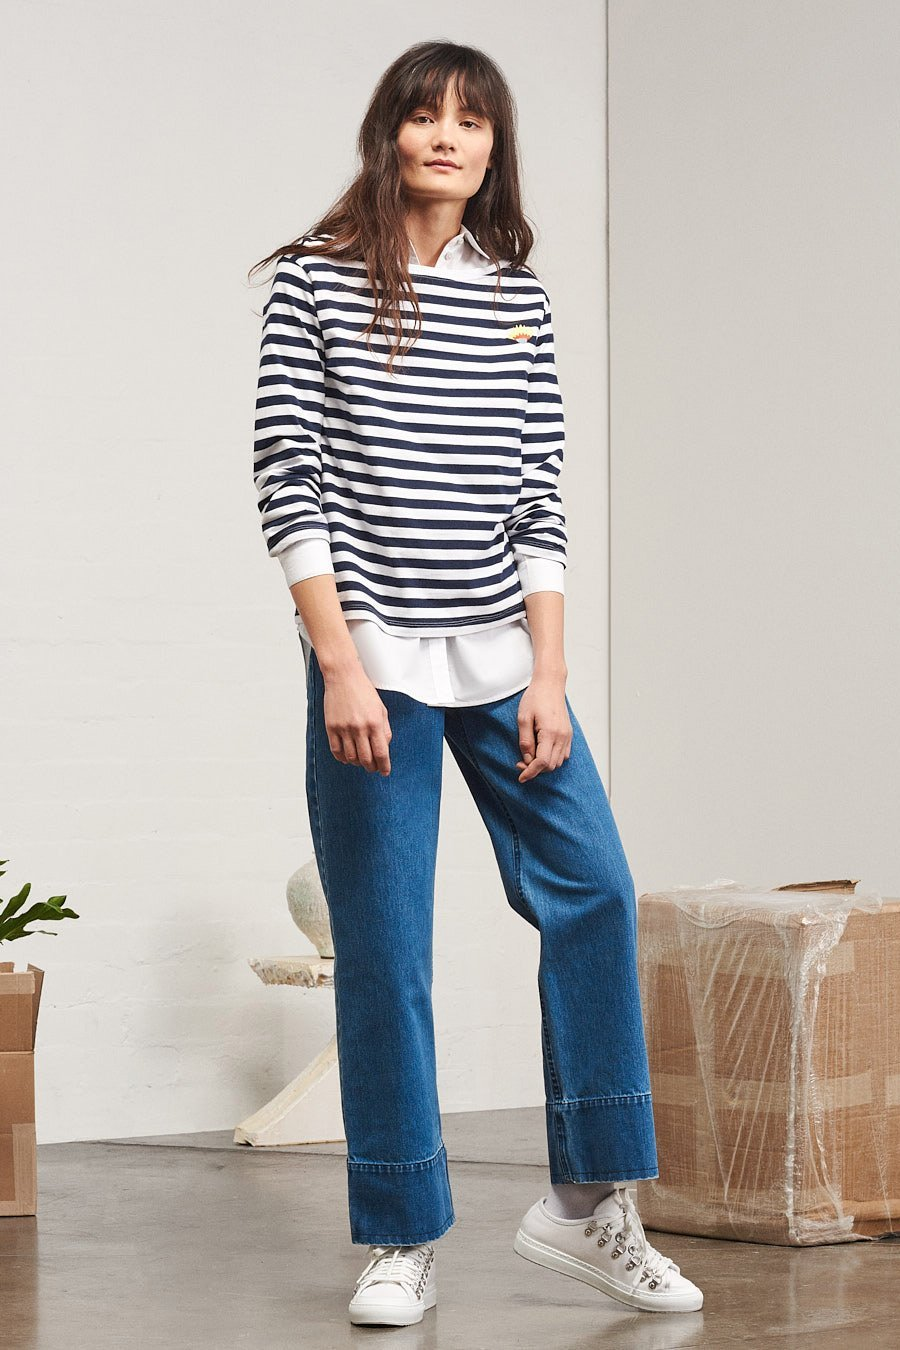 //www.thefrontlash.com/wp-content/uploads/2018/05/bb-boat-neck-top_09_navy-stripe_lookbook_800x1200@2x.jpg